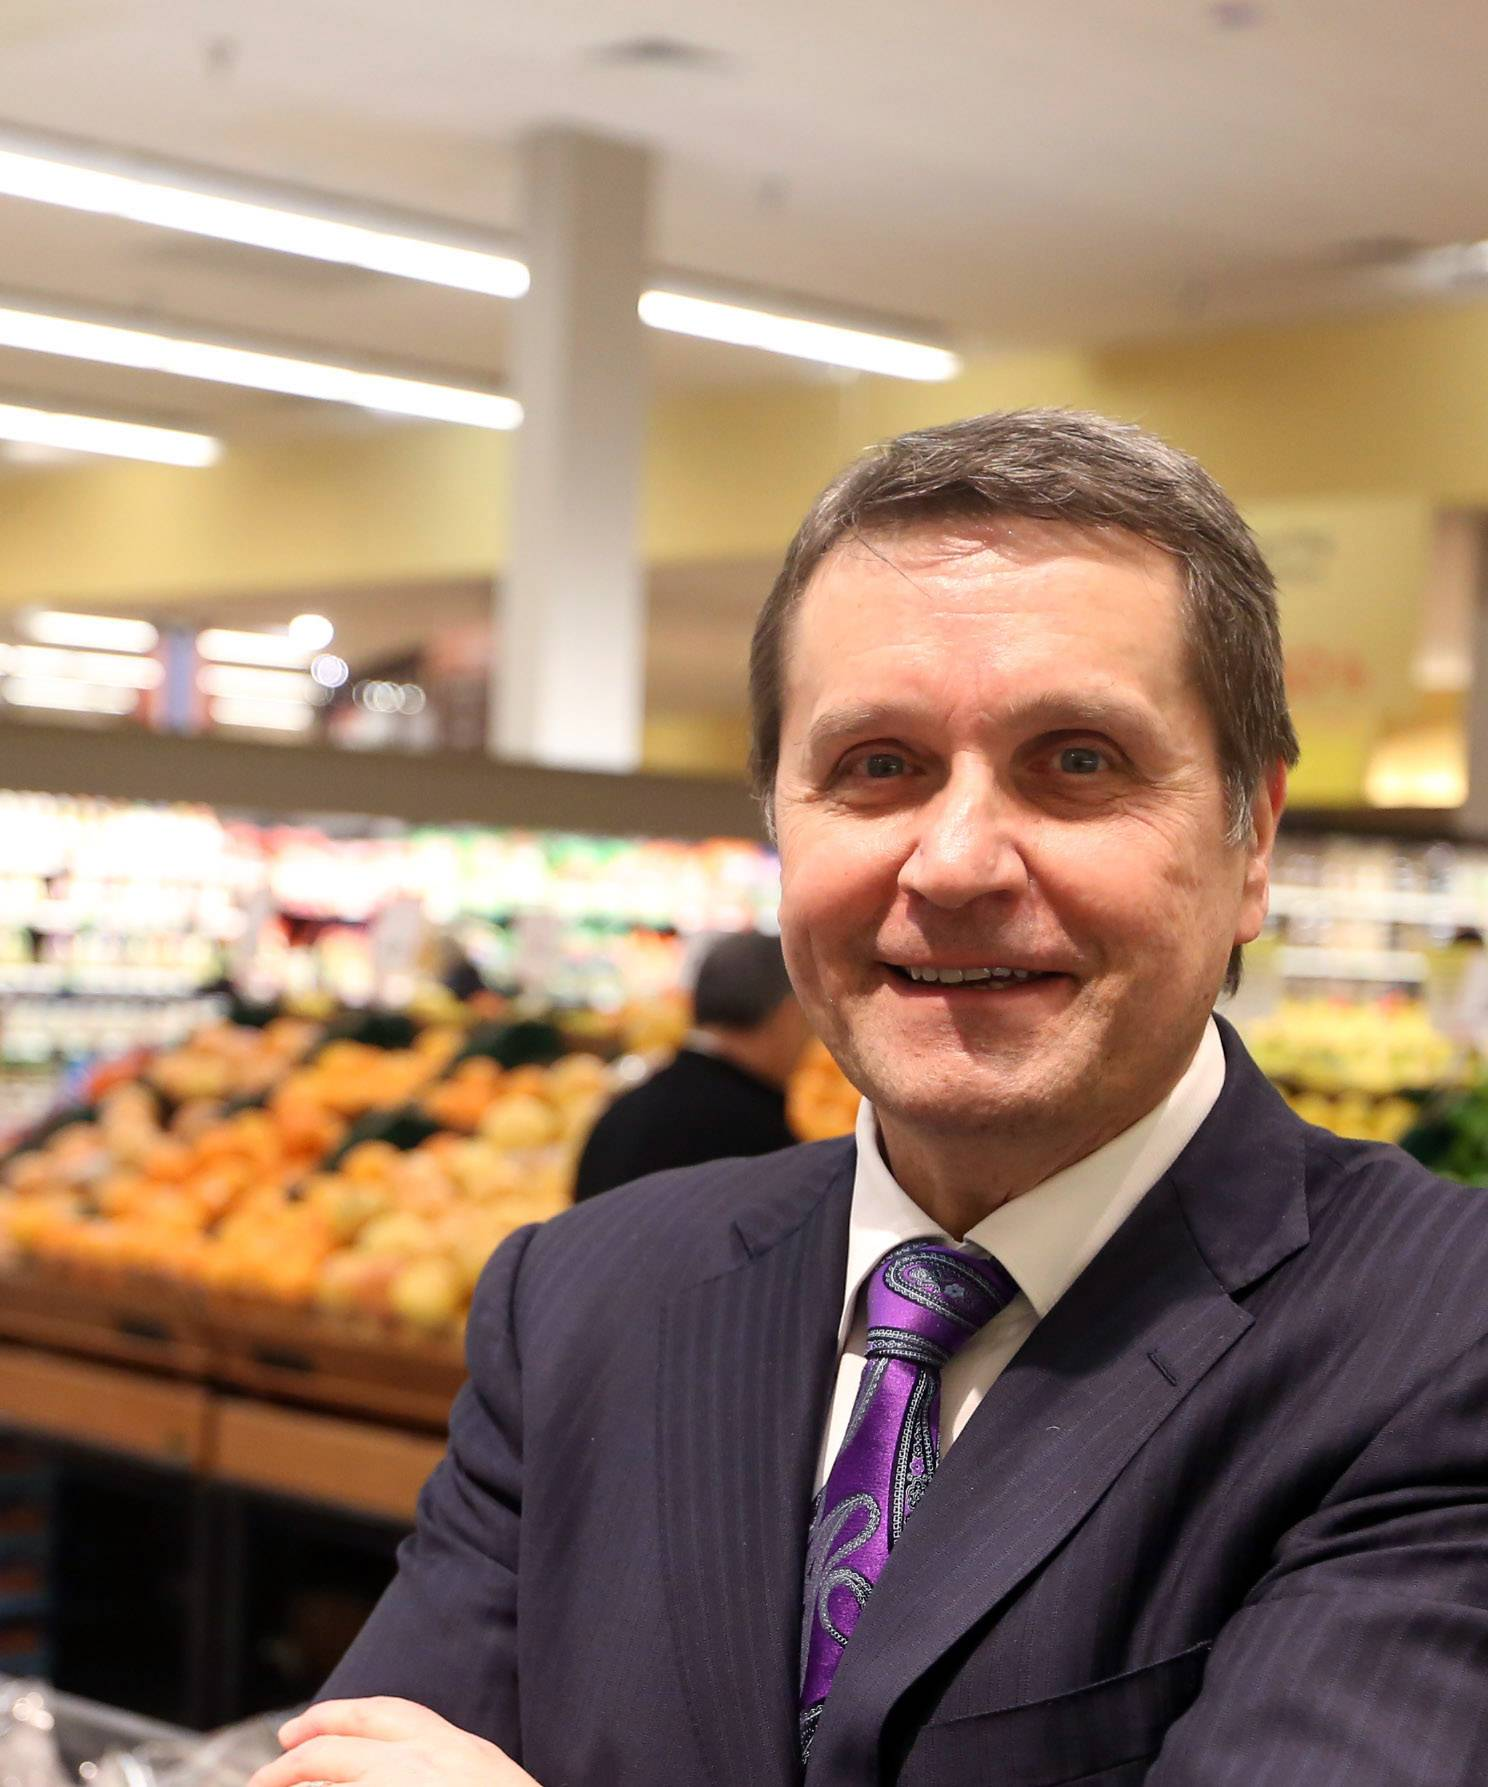 Mariano's CEO retires after 49 years in grocery industry